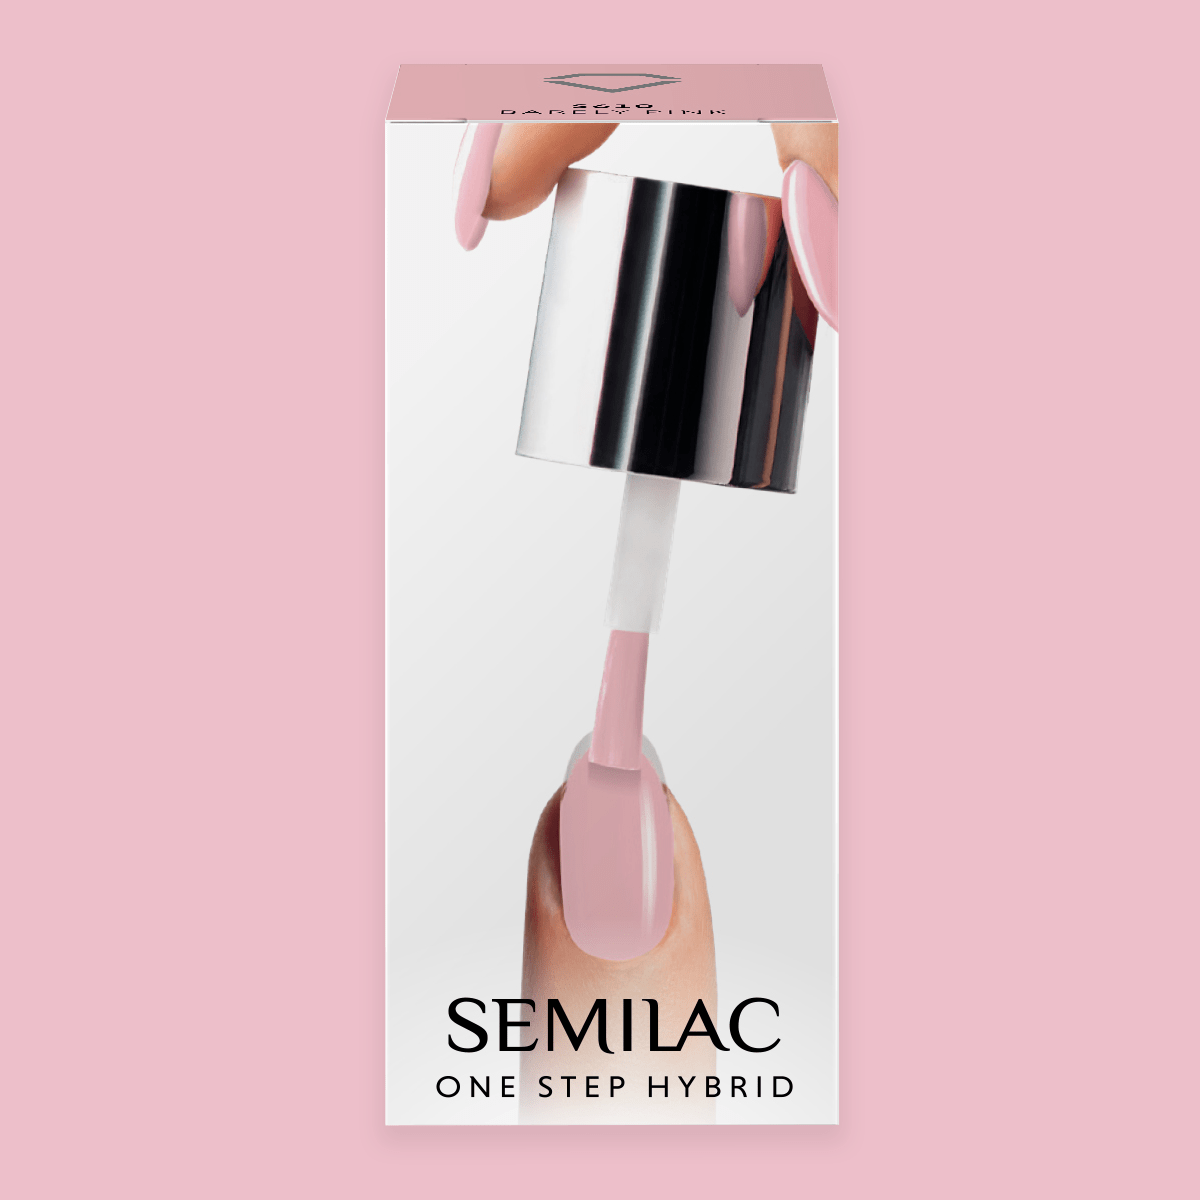 Semilac One Step Hybrid Gel Polish 5ml 610 Barely Pink - FlowertushBeauty